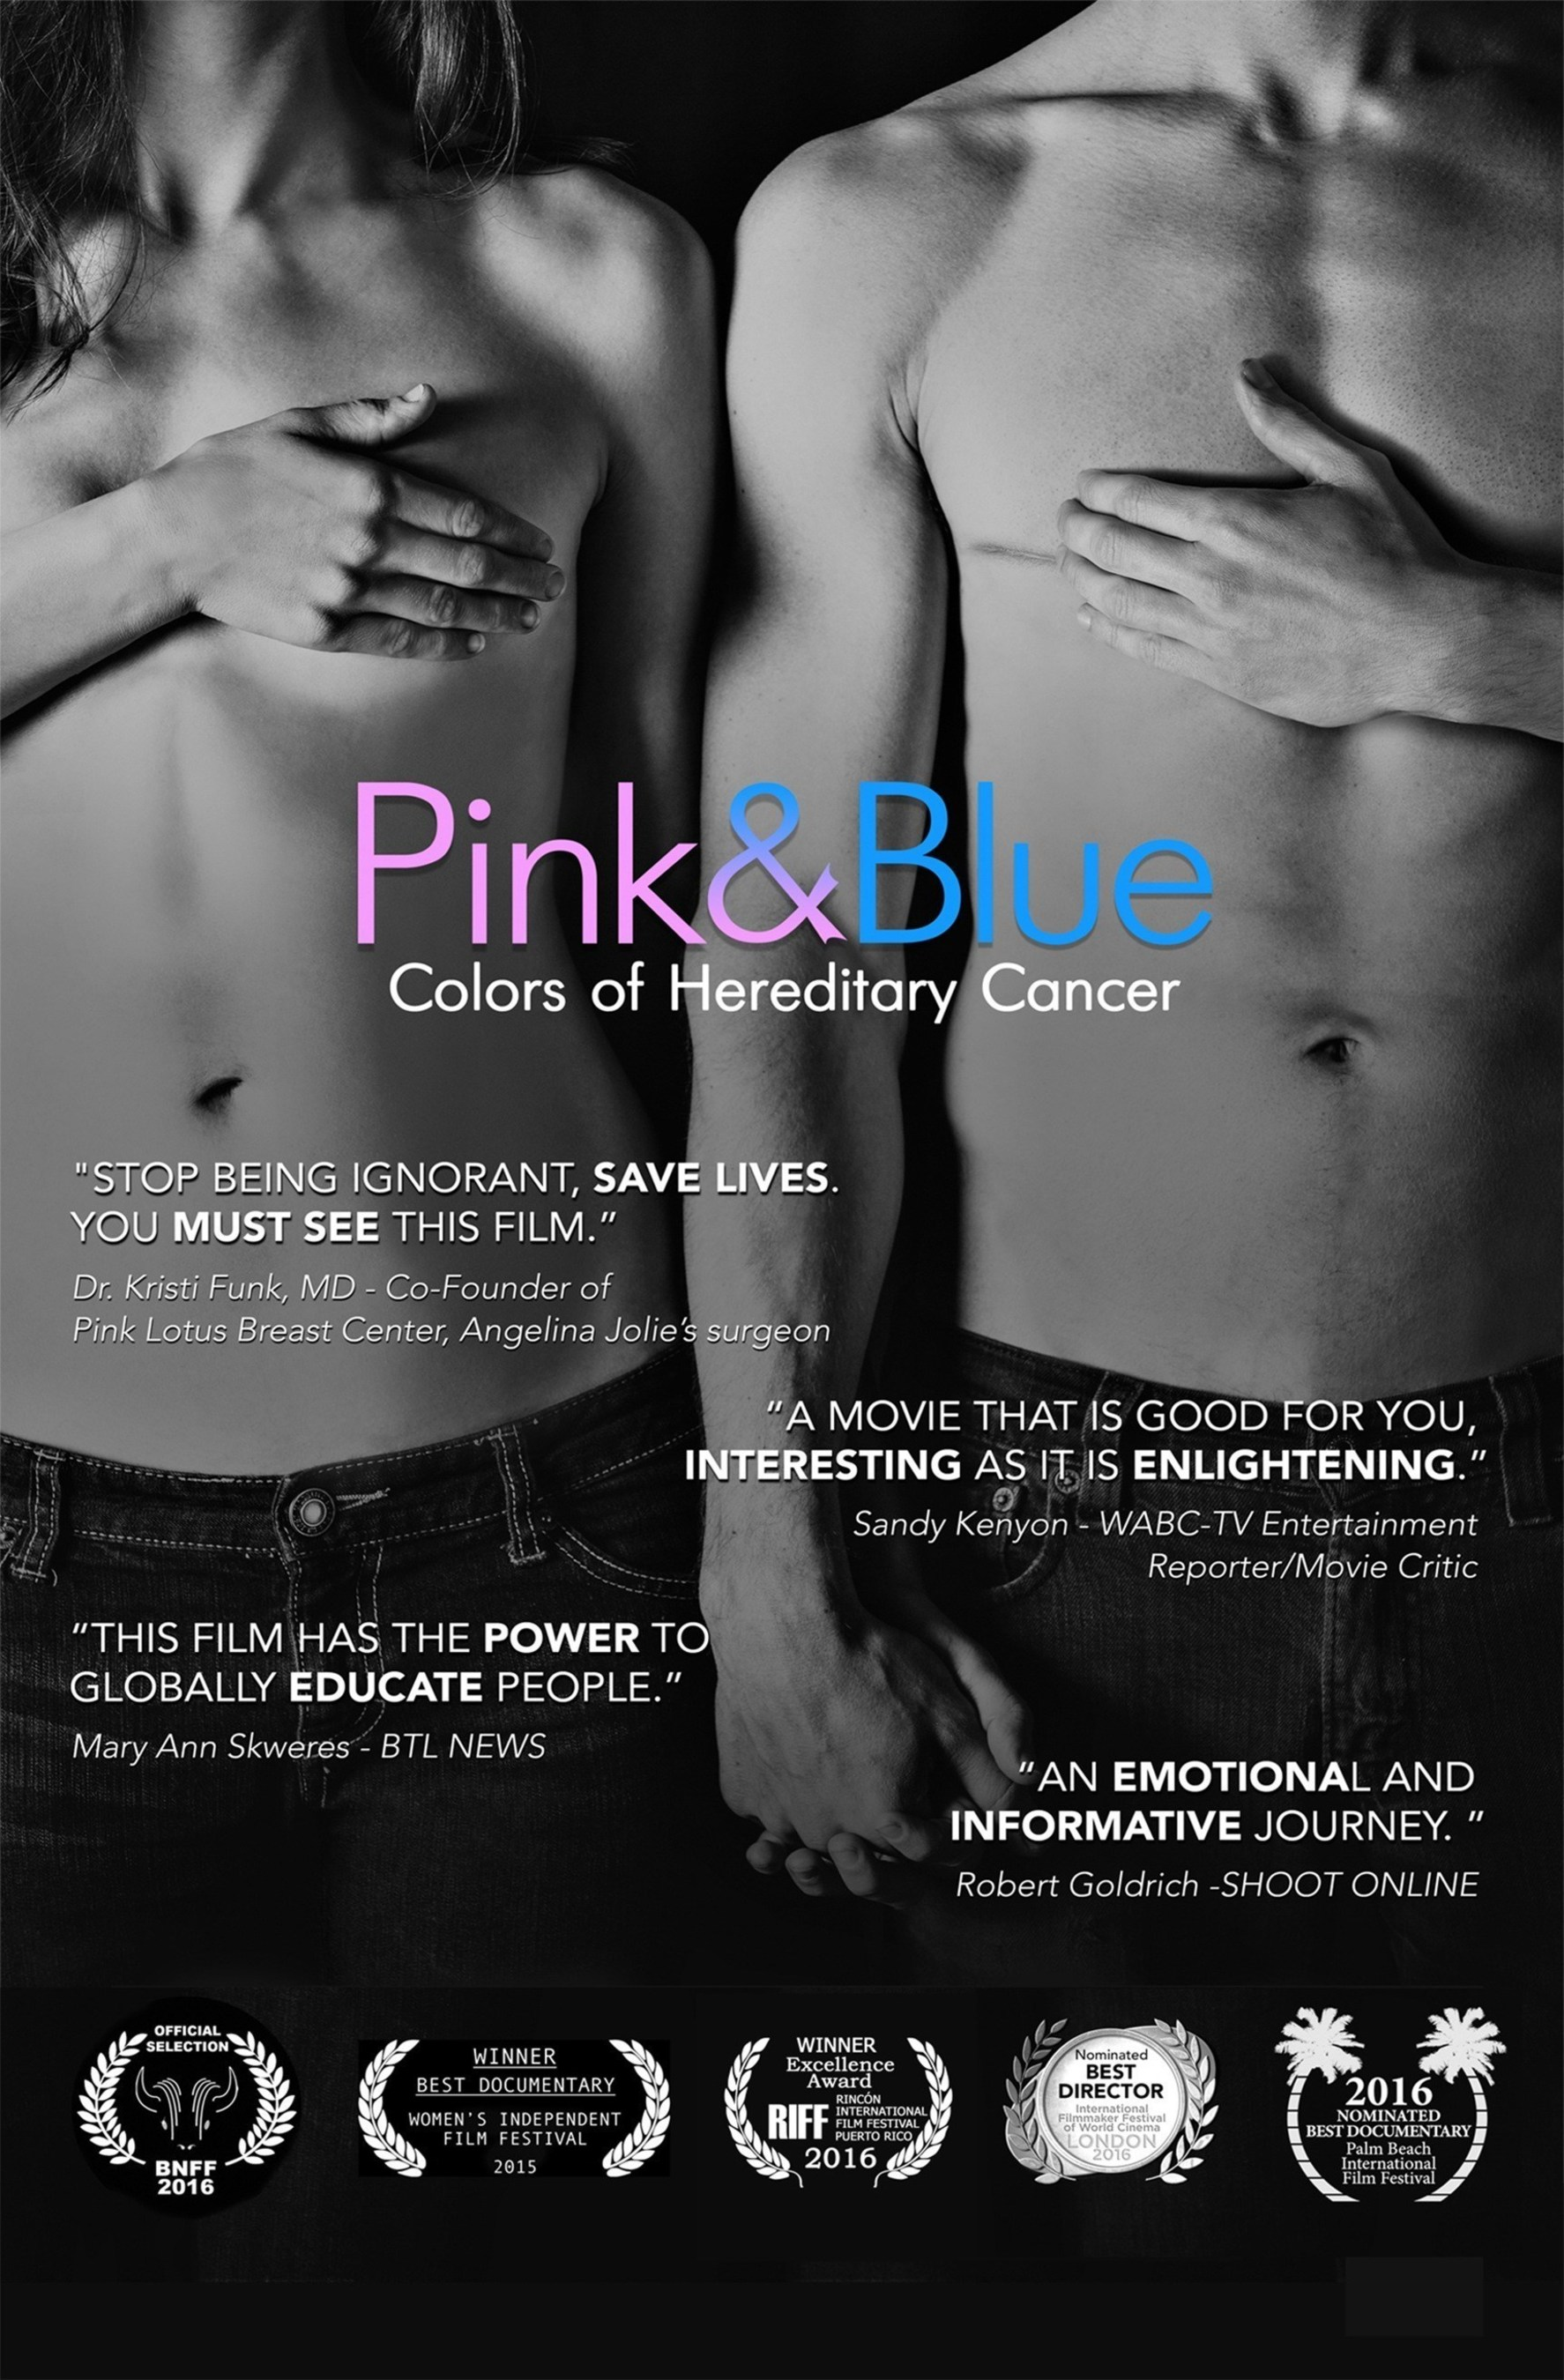 Pink & Blue: Colors of Hereditary Cancer, Thursday, December 1, 2016 at 7:30 pm, Kerasotes ShowPlace ICON Theatre Chicago